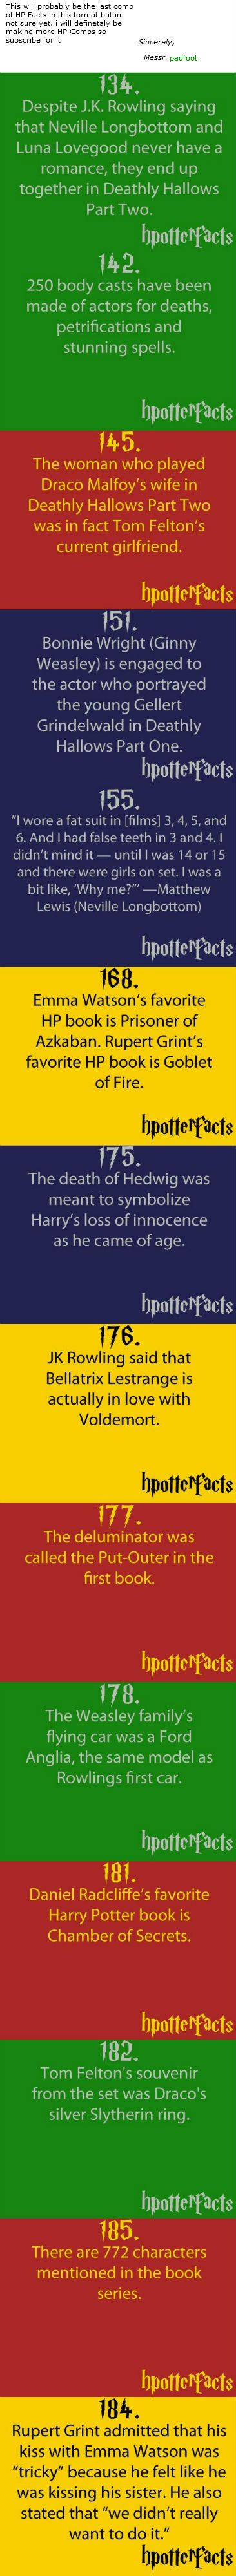 Harry potter facts. I find it interesting that Daniel, Emma, and Rupert's favorite HP books are earlier in the series.